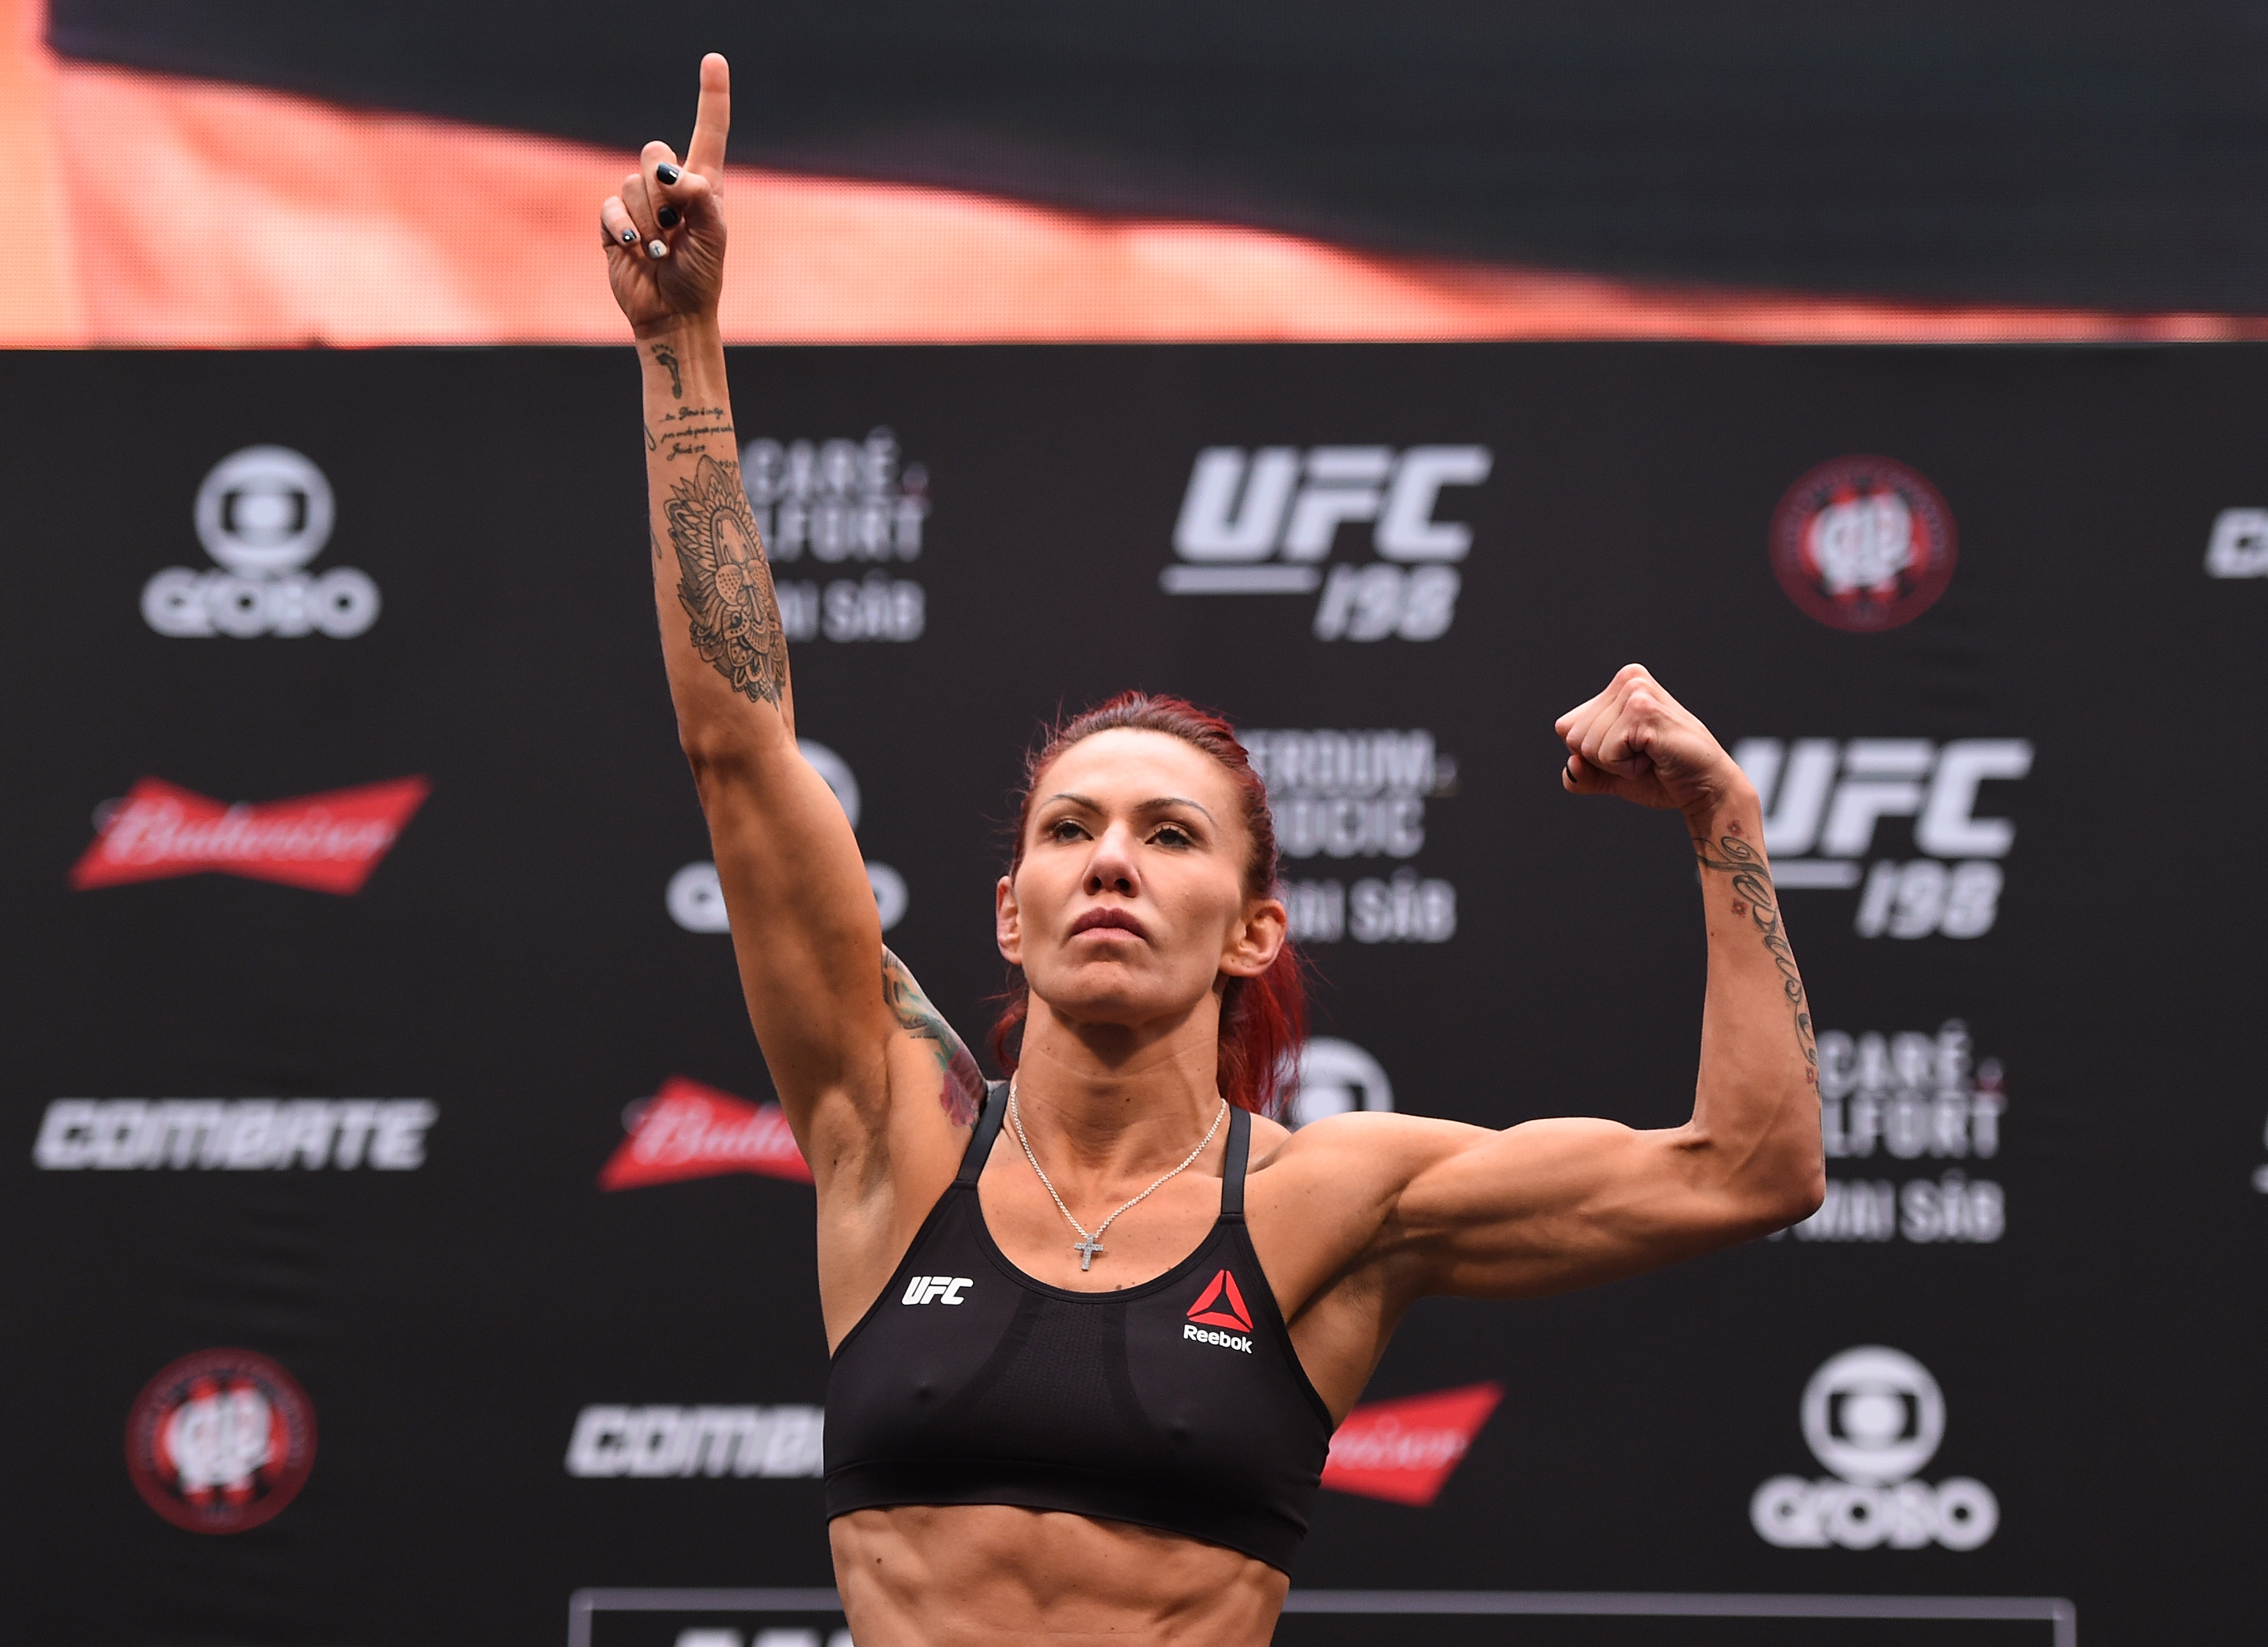 Cris Cyborg slams UFC and Dana White in open letter to fans after punching Angela Magana